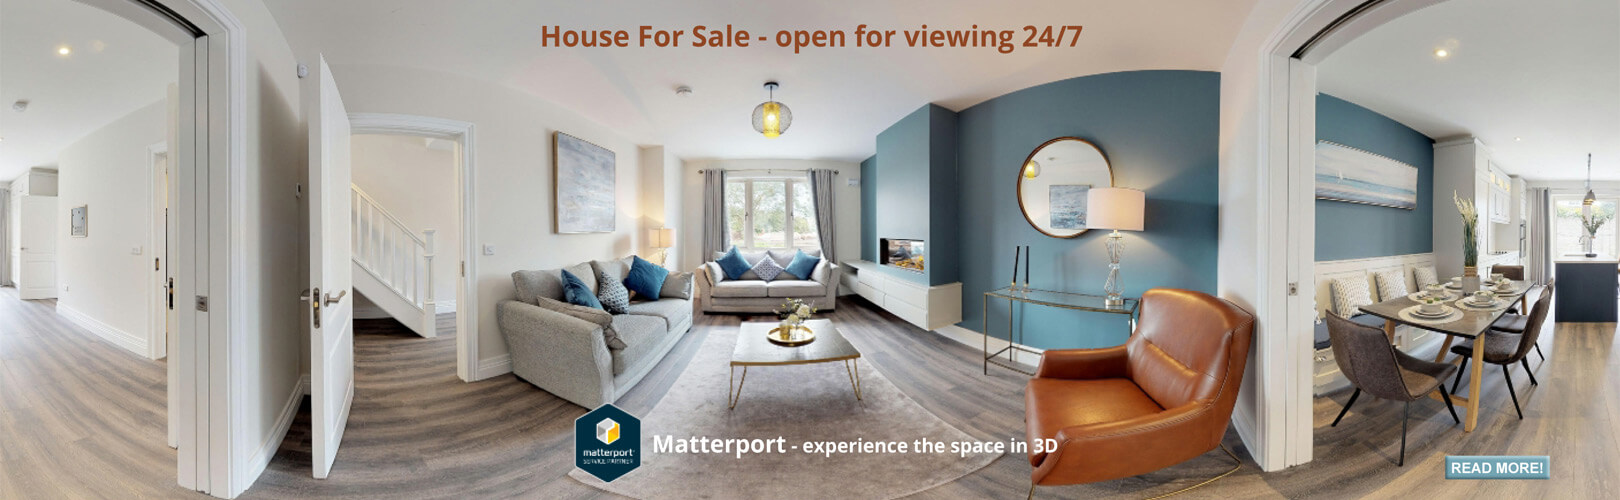 matterport-3d-360-degree-showhouse-real-estate-virtual-tours-v1-1620x500